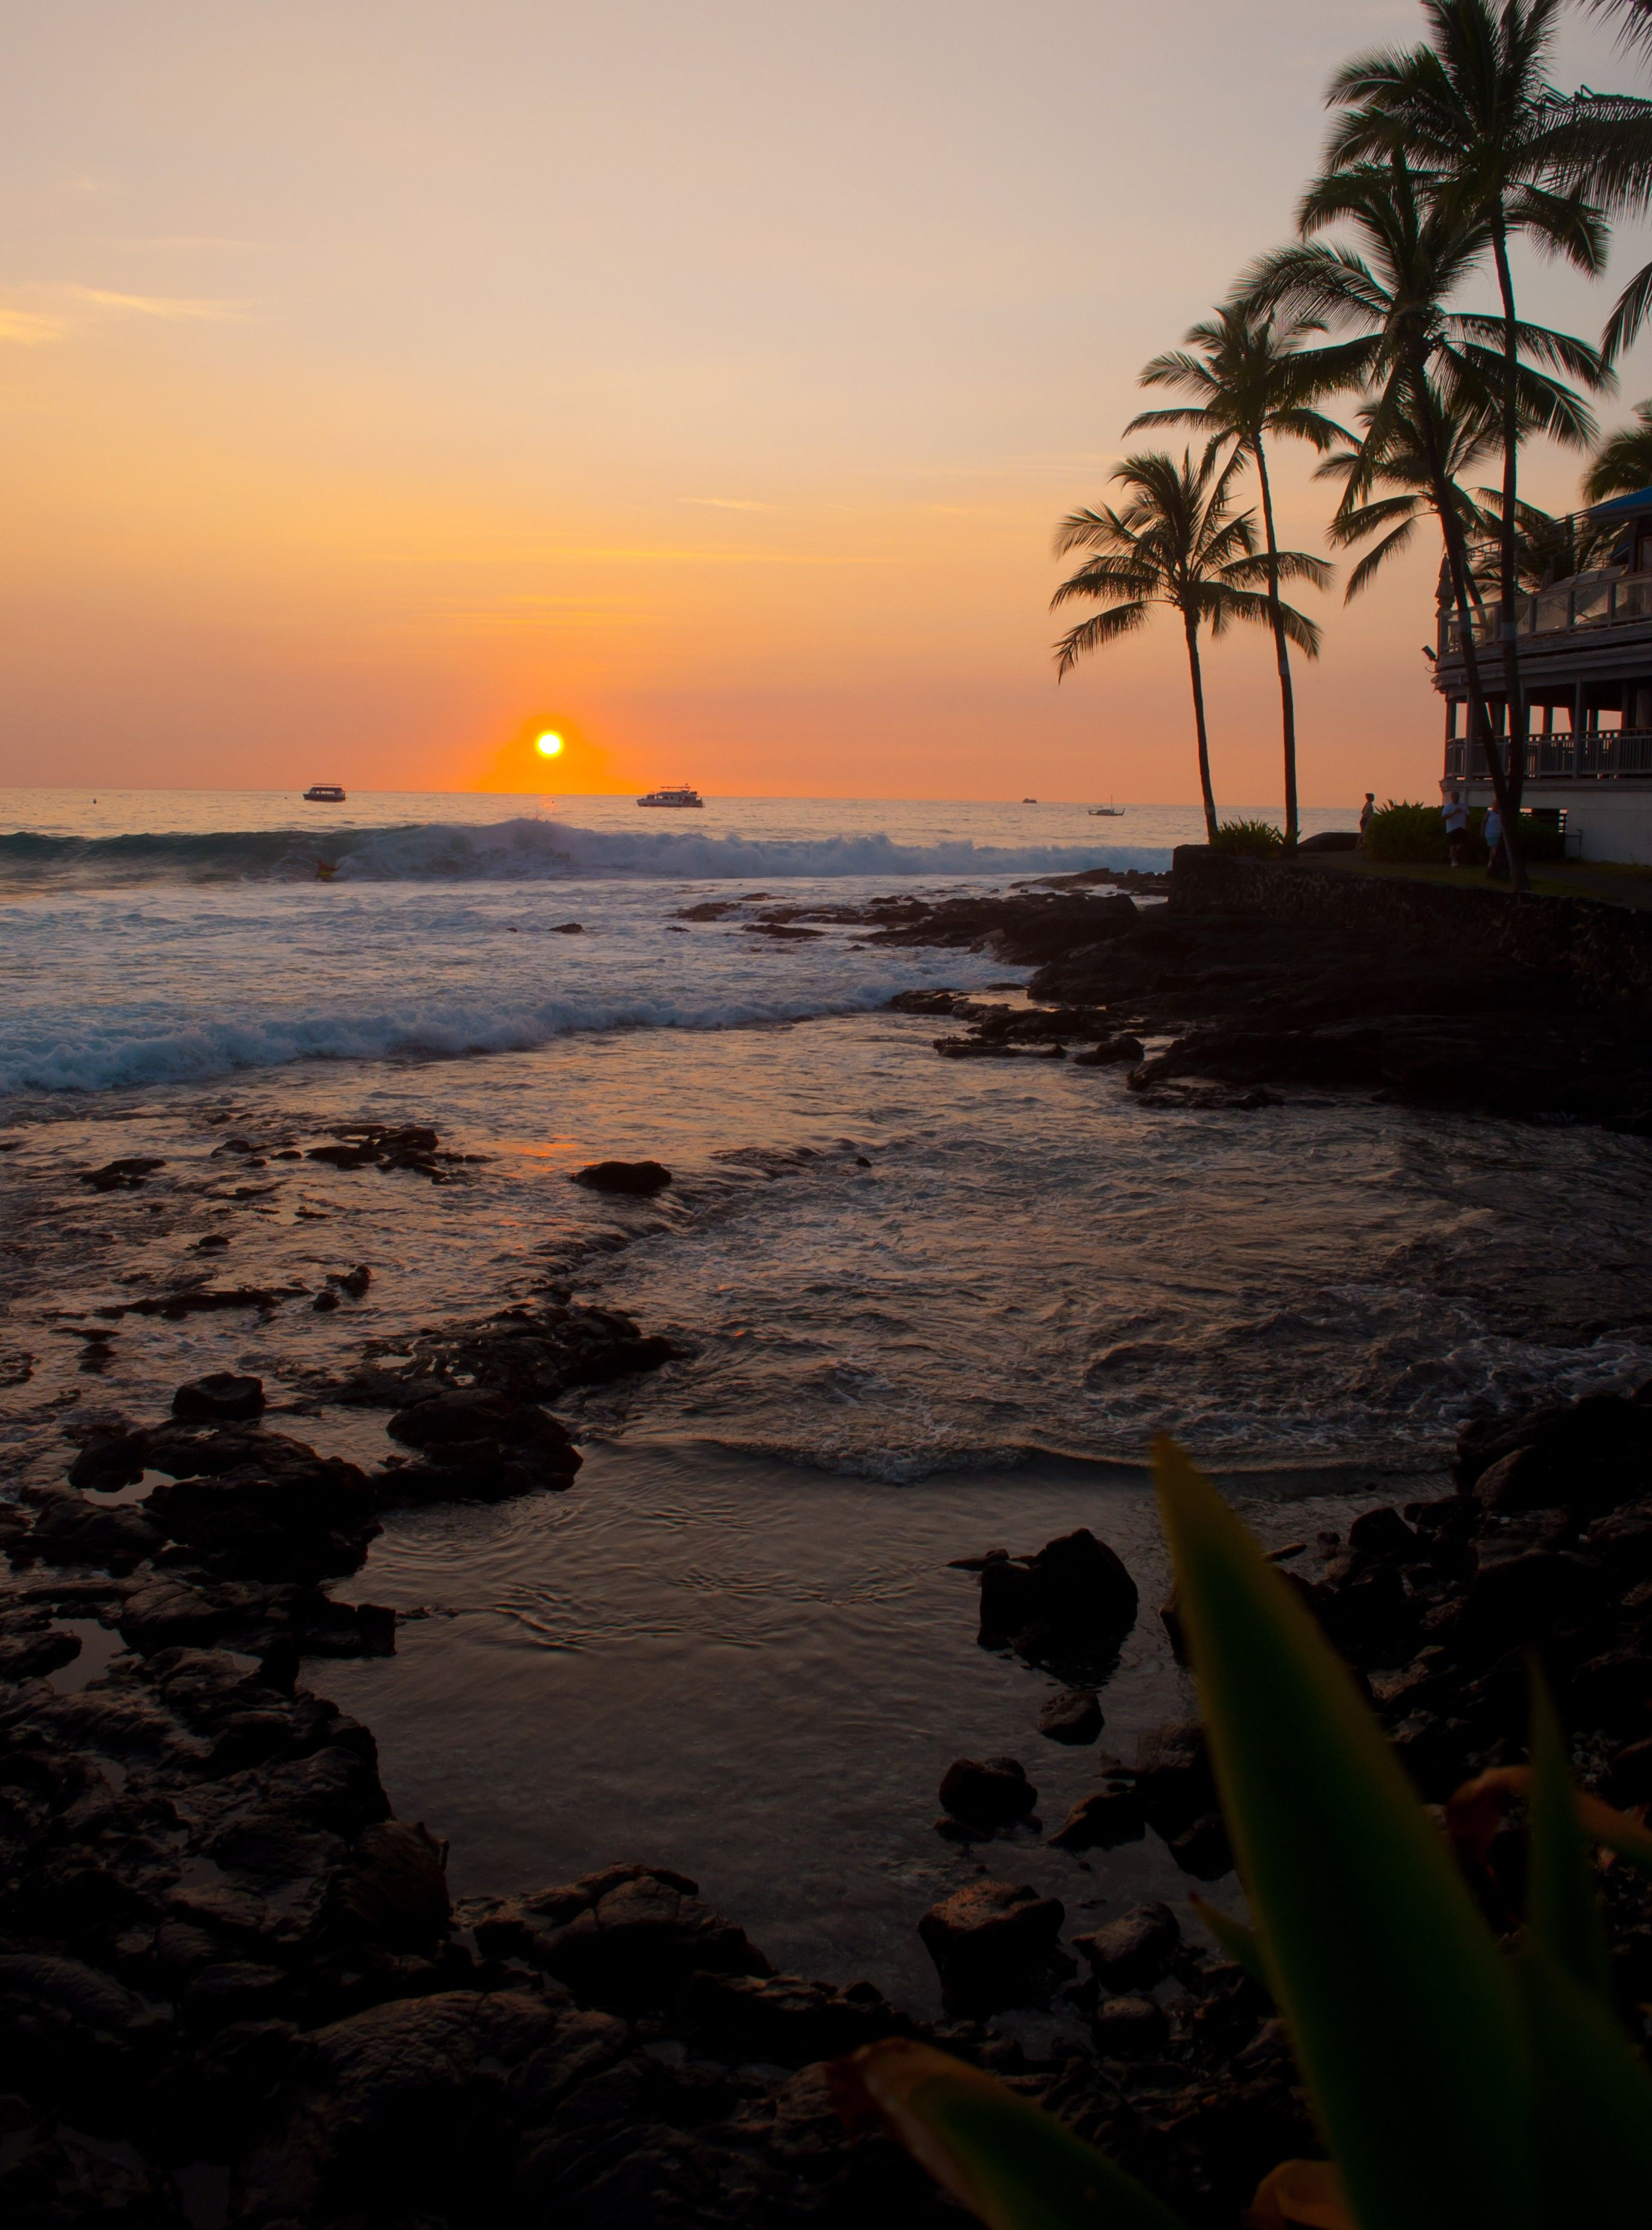 The sun sets over the ocean, with a view of the shore and palm trees.